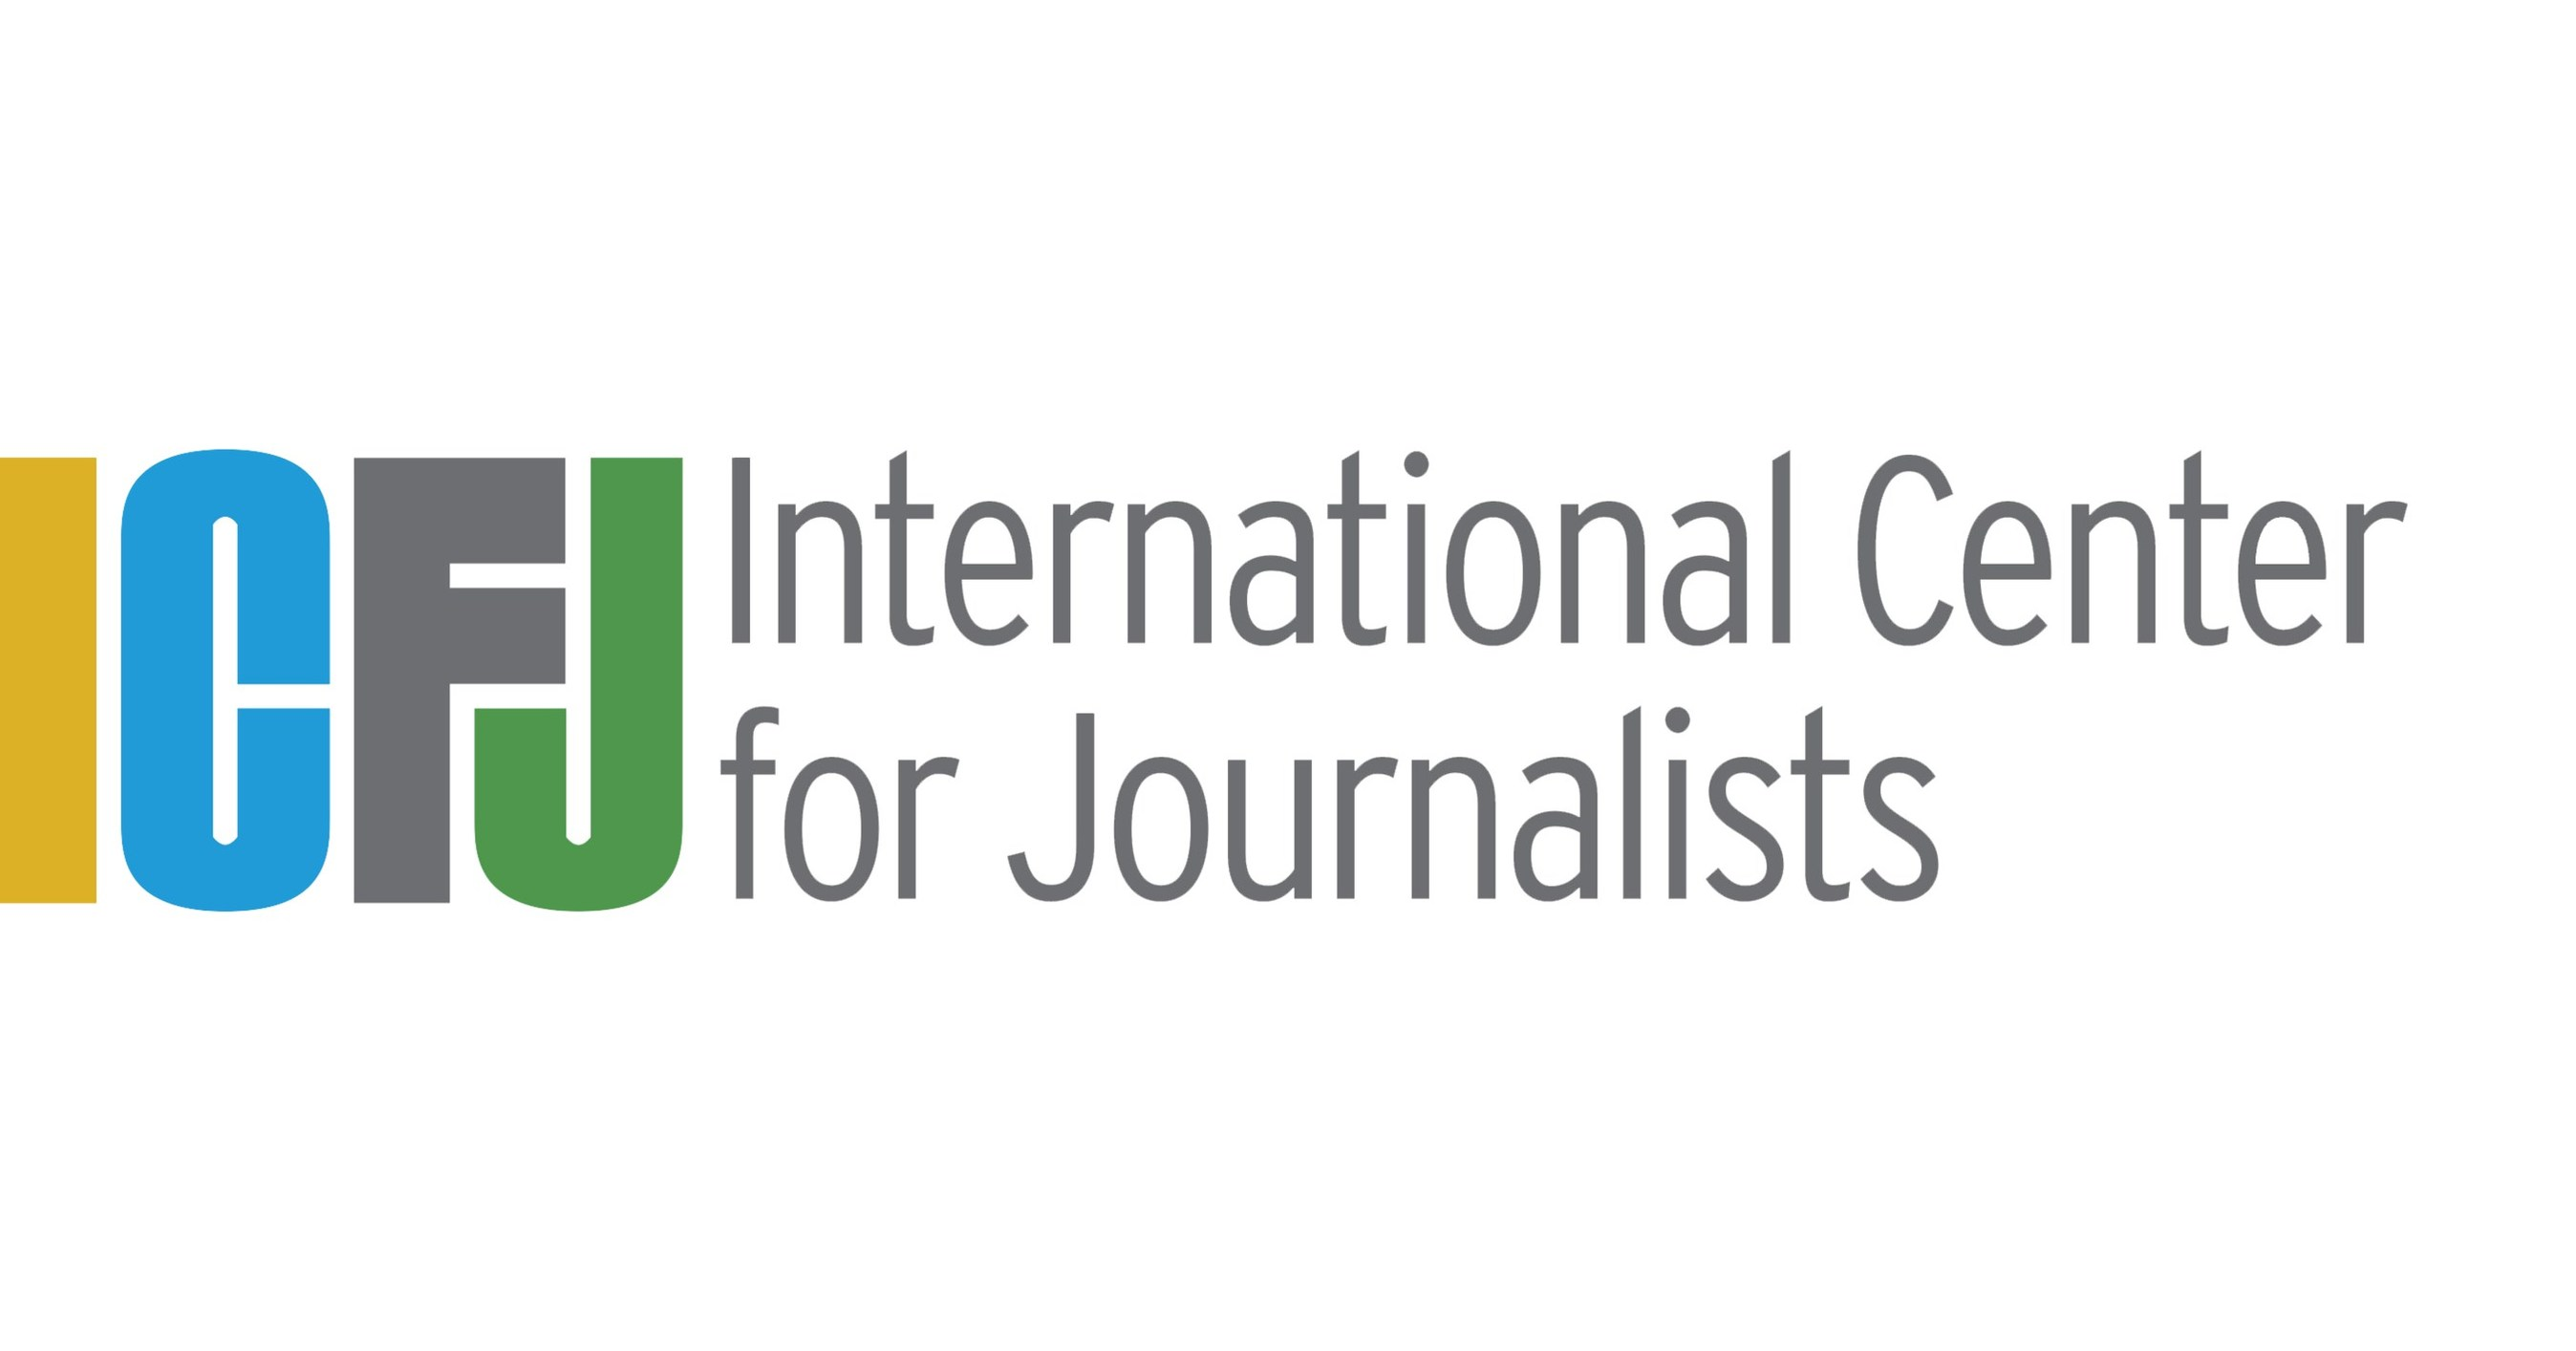 ICFJ Survey: Journalists Worldwide are Embracing Technology to Tackle Daunting Challenges